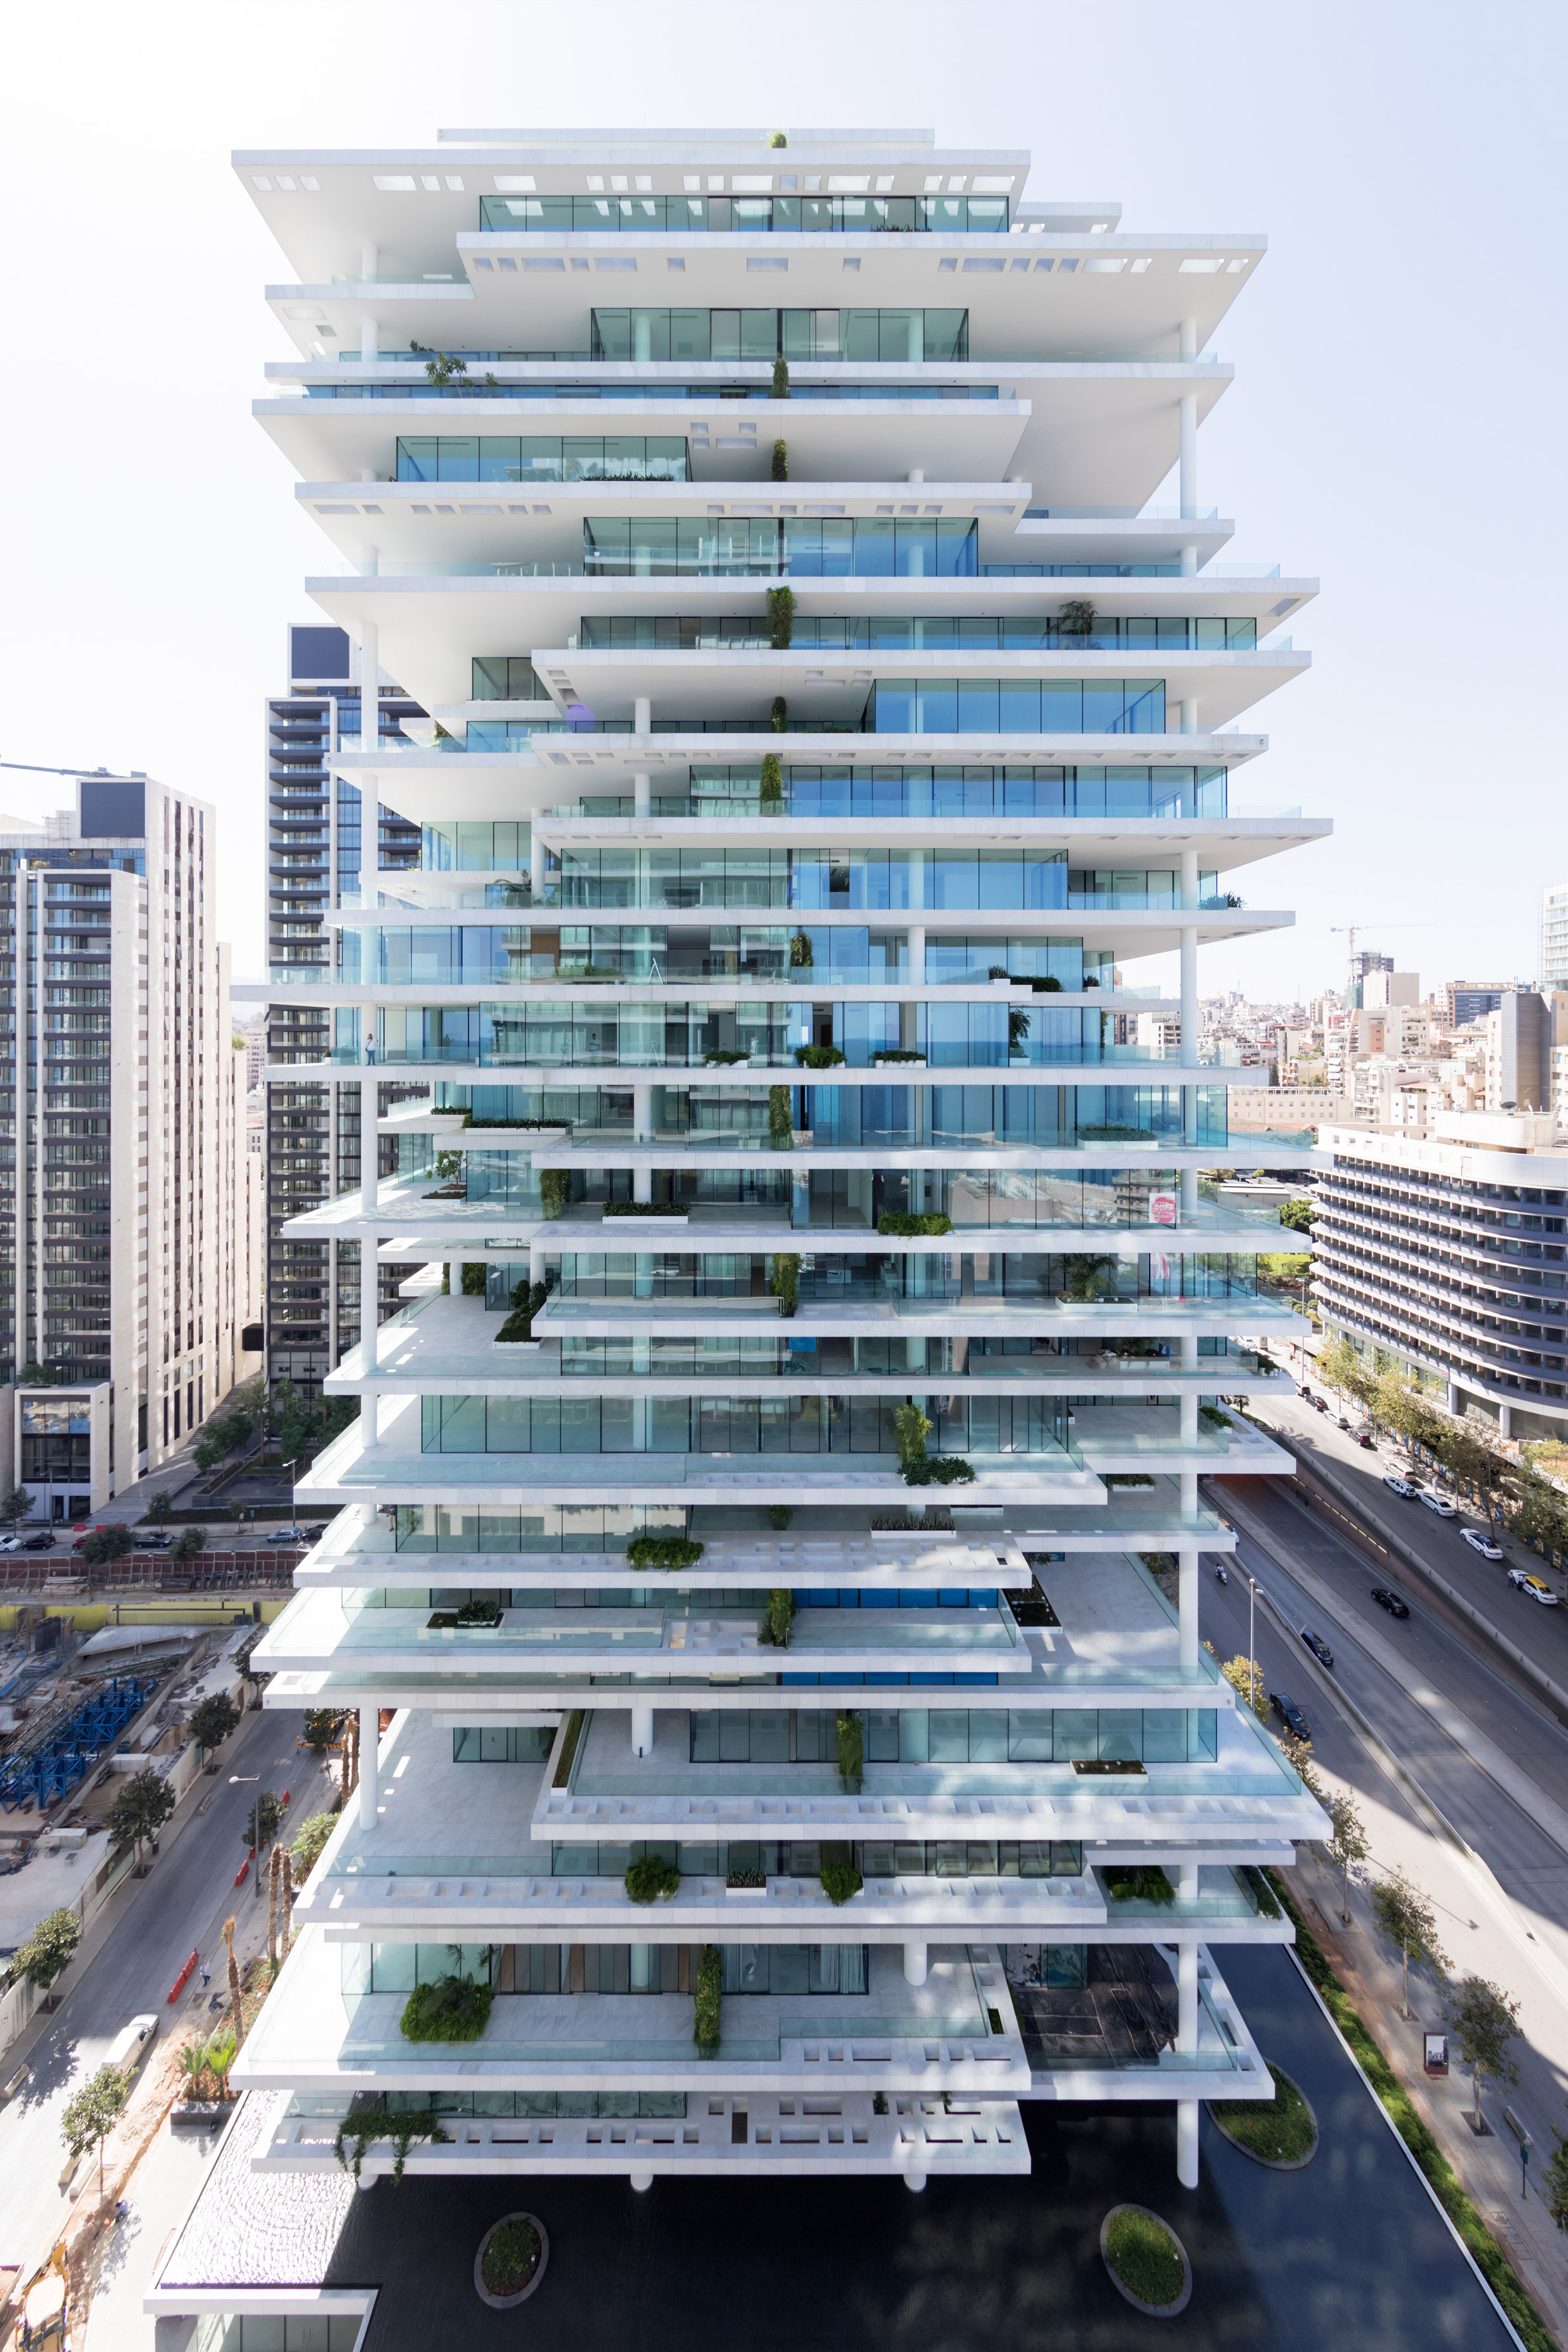 Herzog & de Meuron uses staggered floors to create plant-covered terraces at Beirut tower